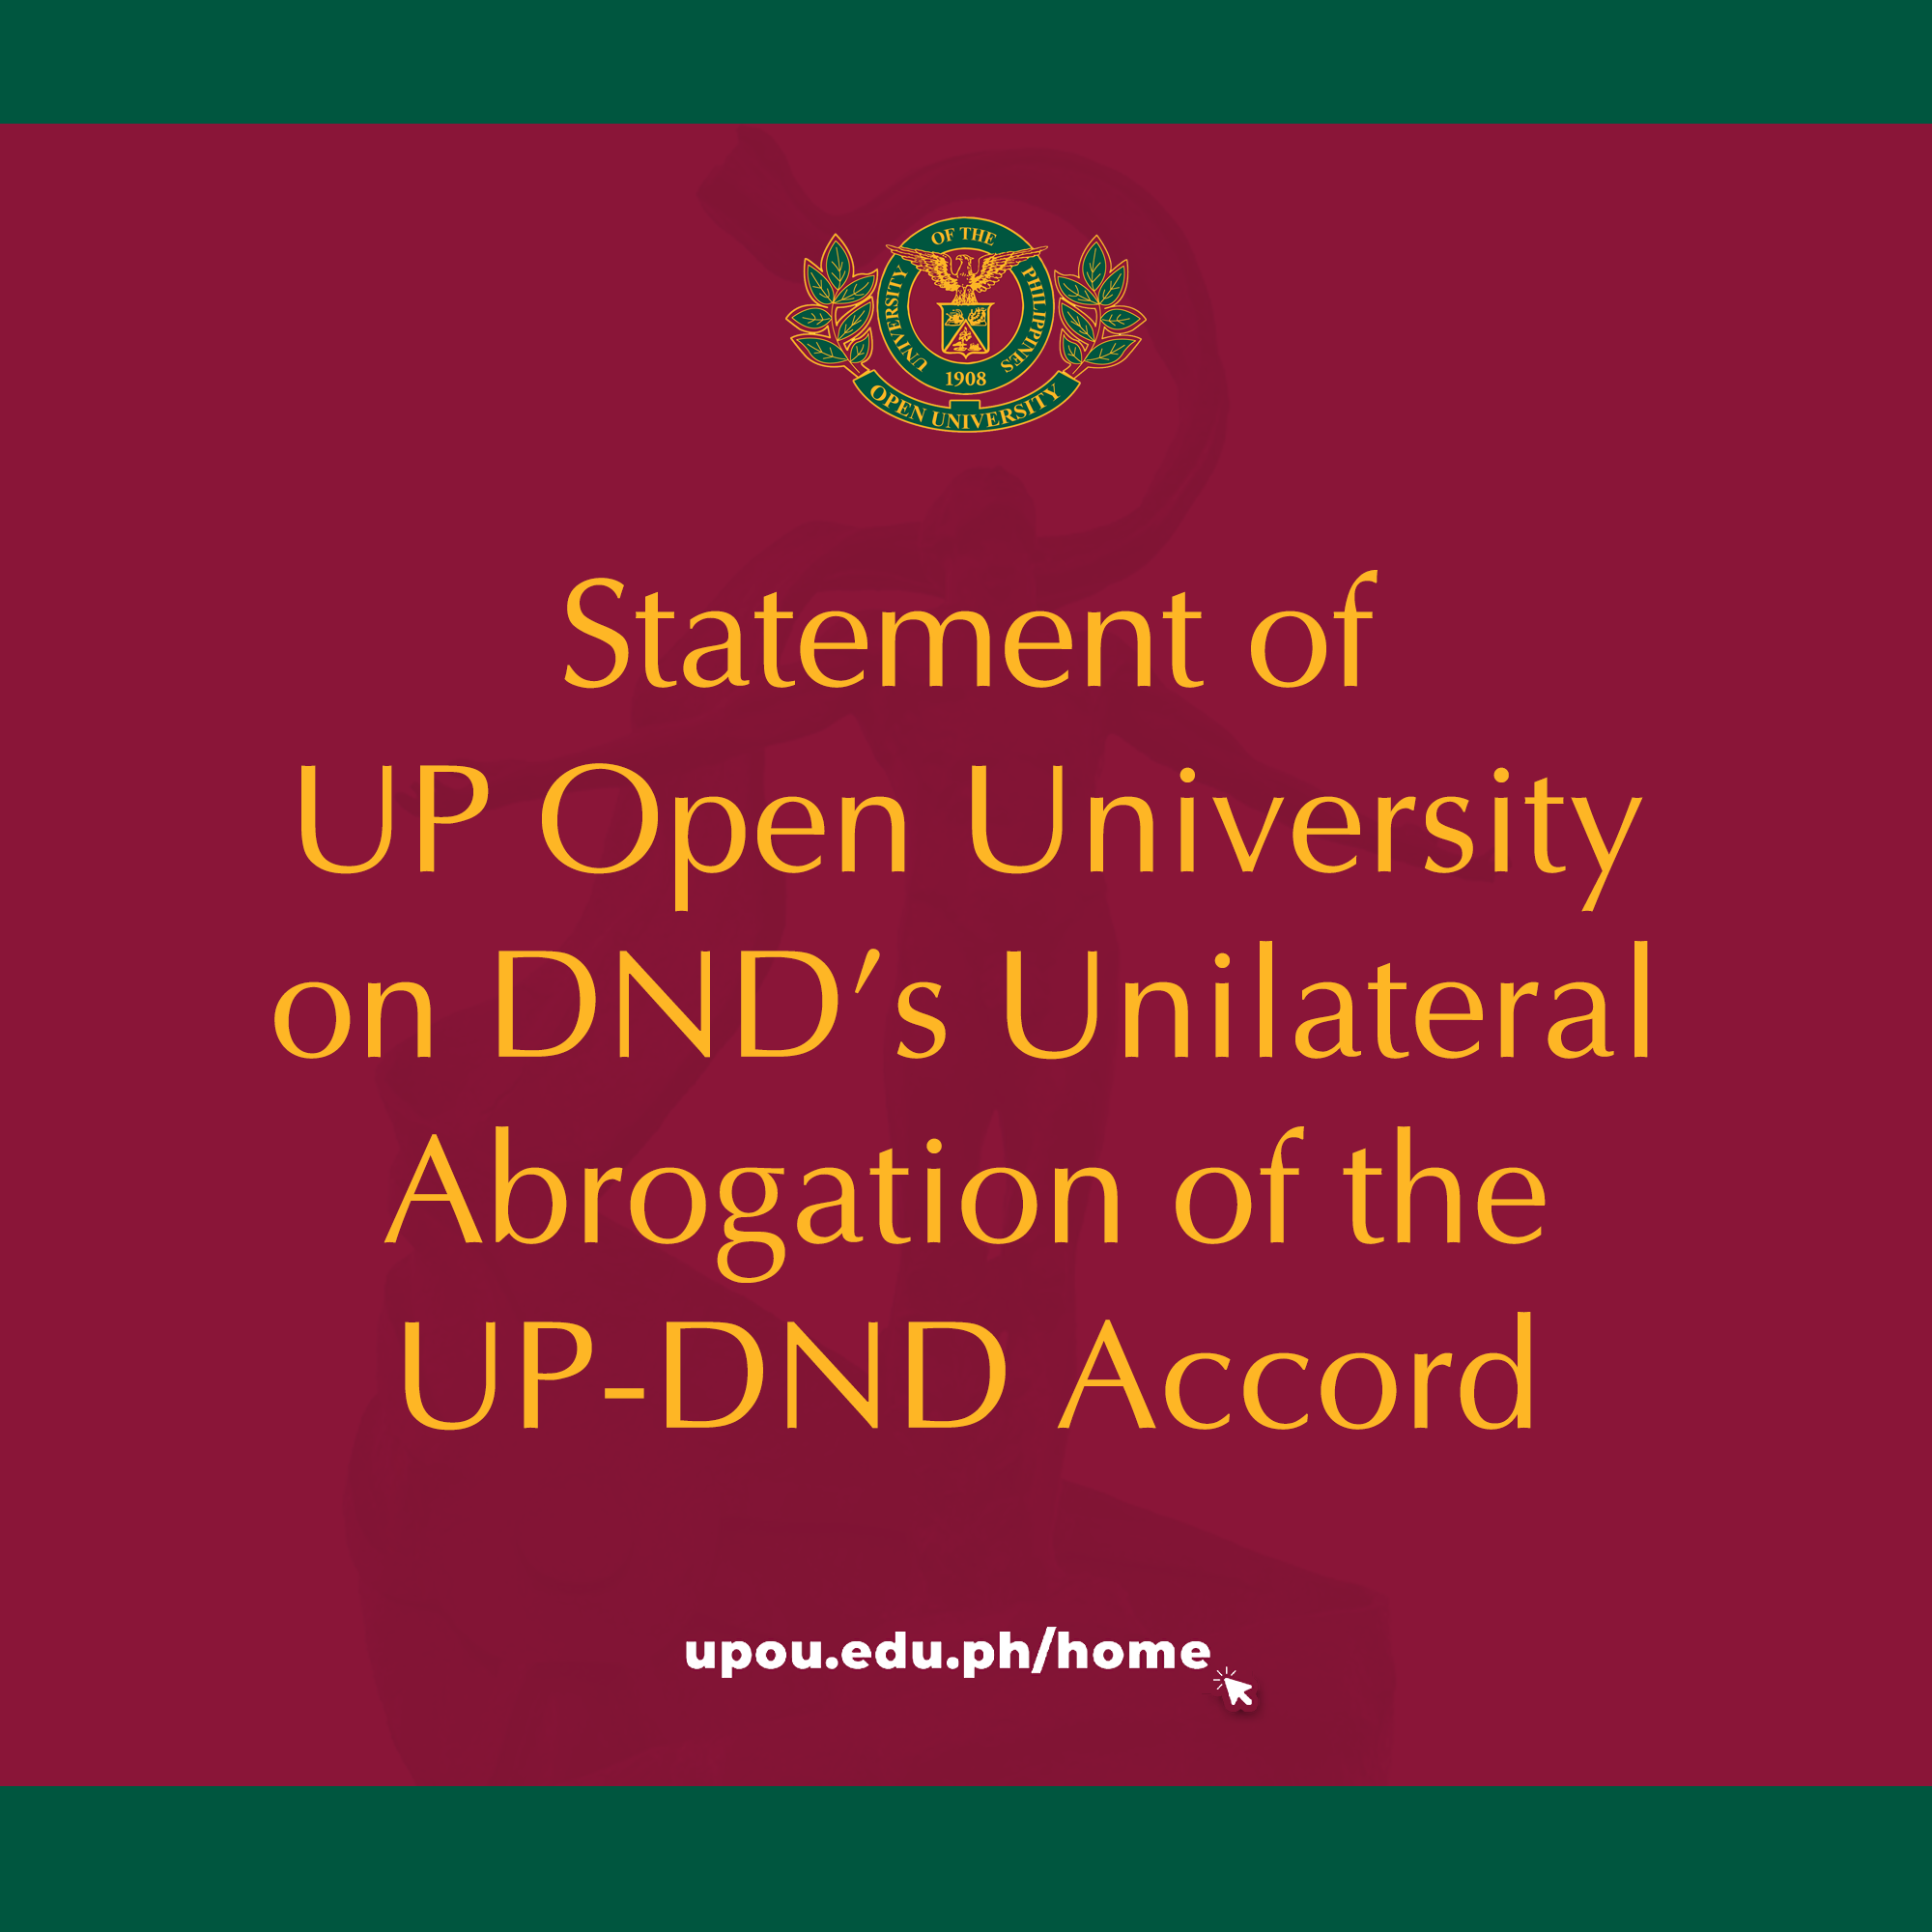 Statement of UPOU on DND's Unilateral Abrogation of the UP-DND Accord